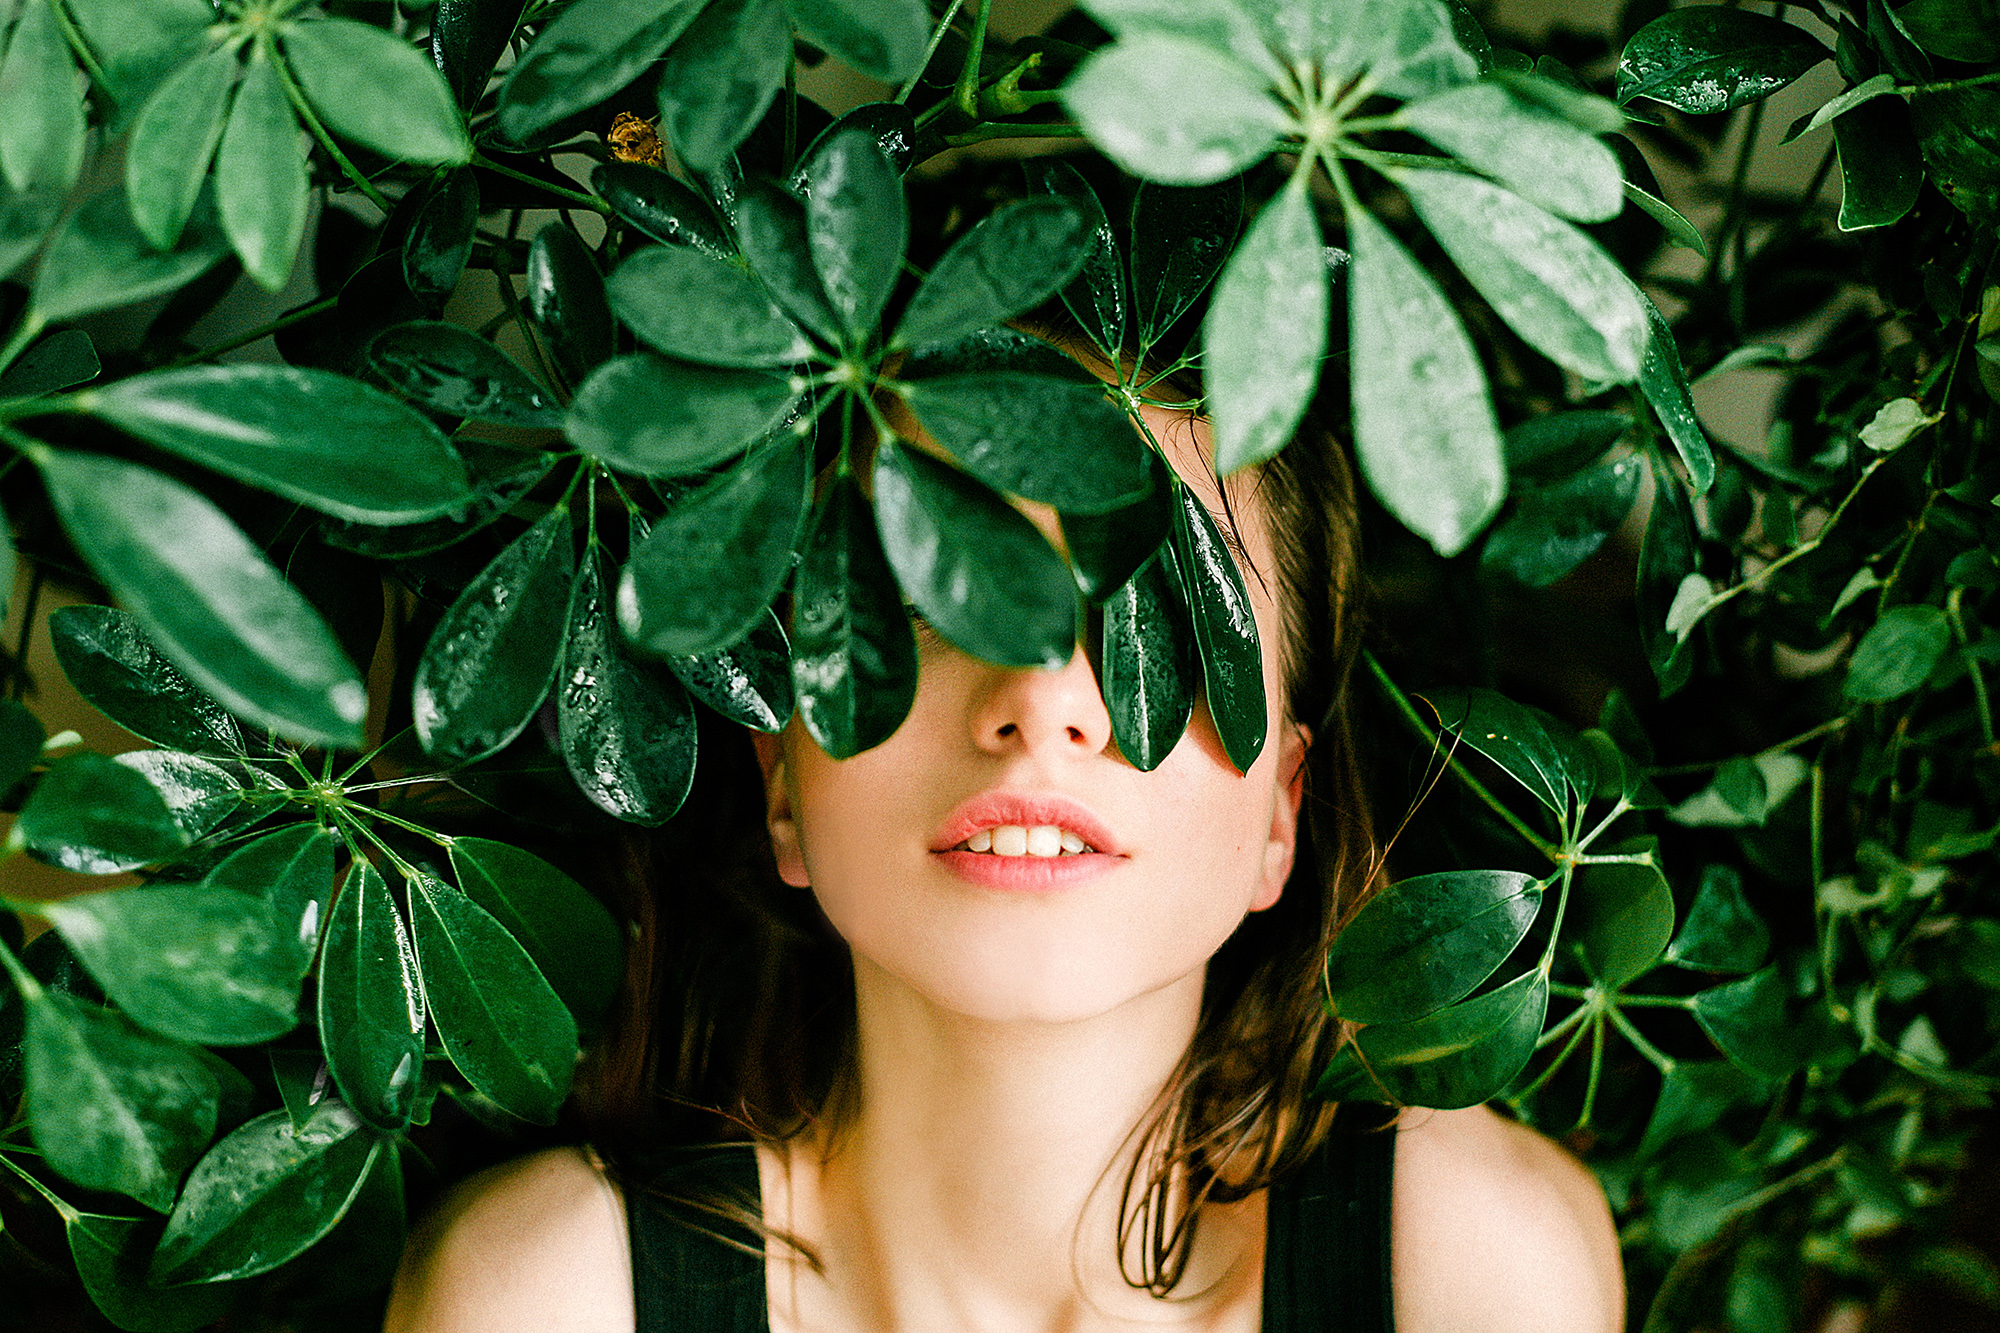 A woman lays in green lush plants, with her face partially obscured by leafs.